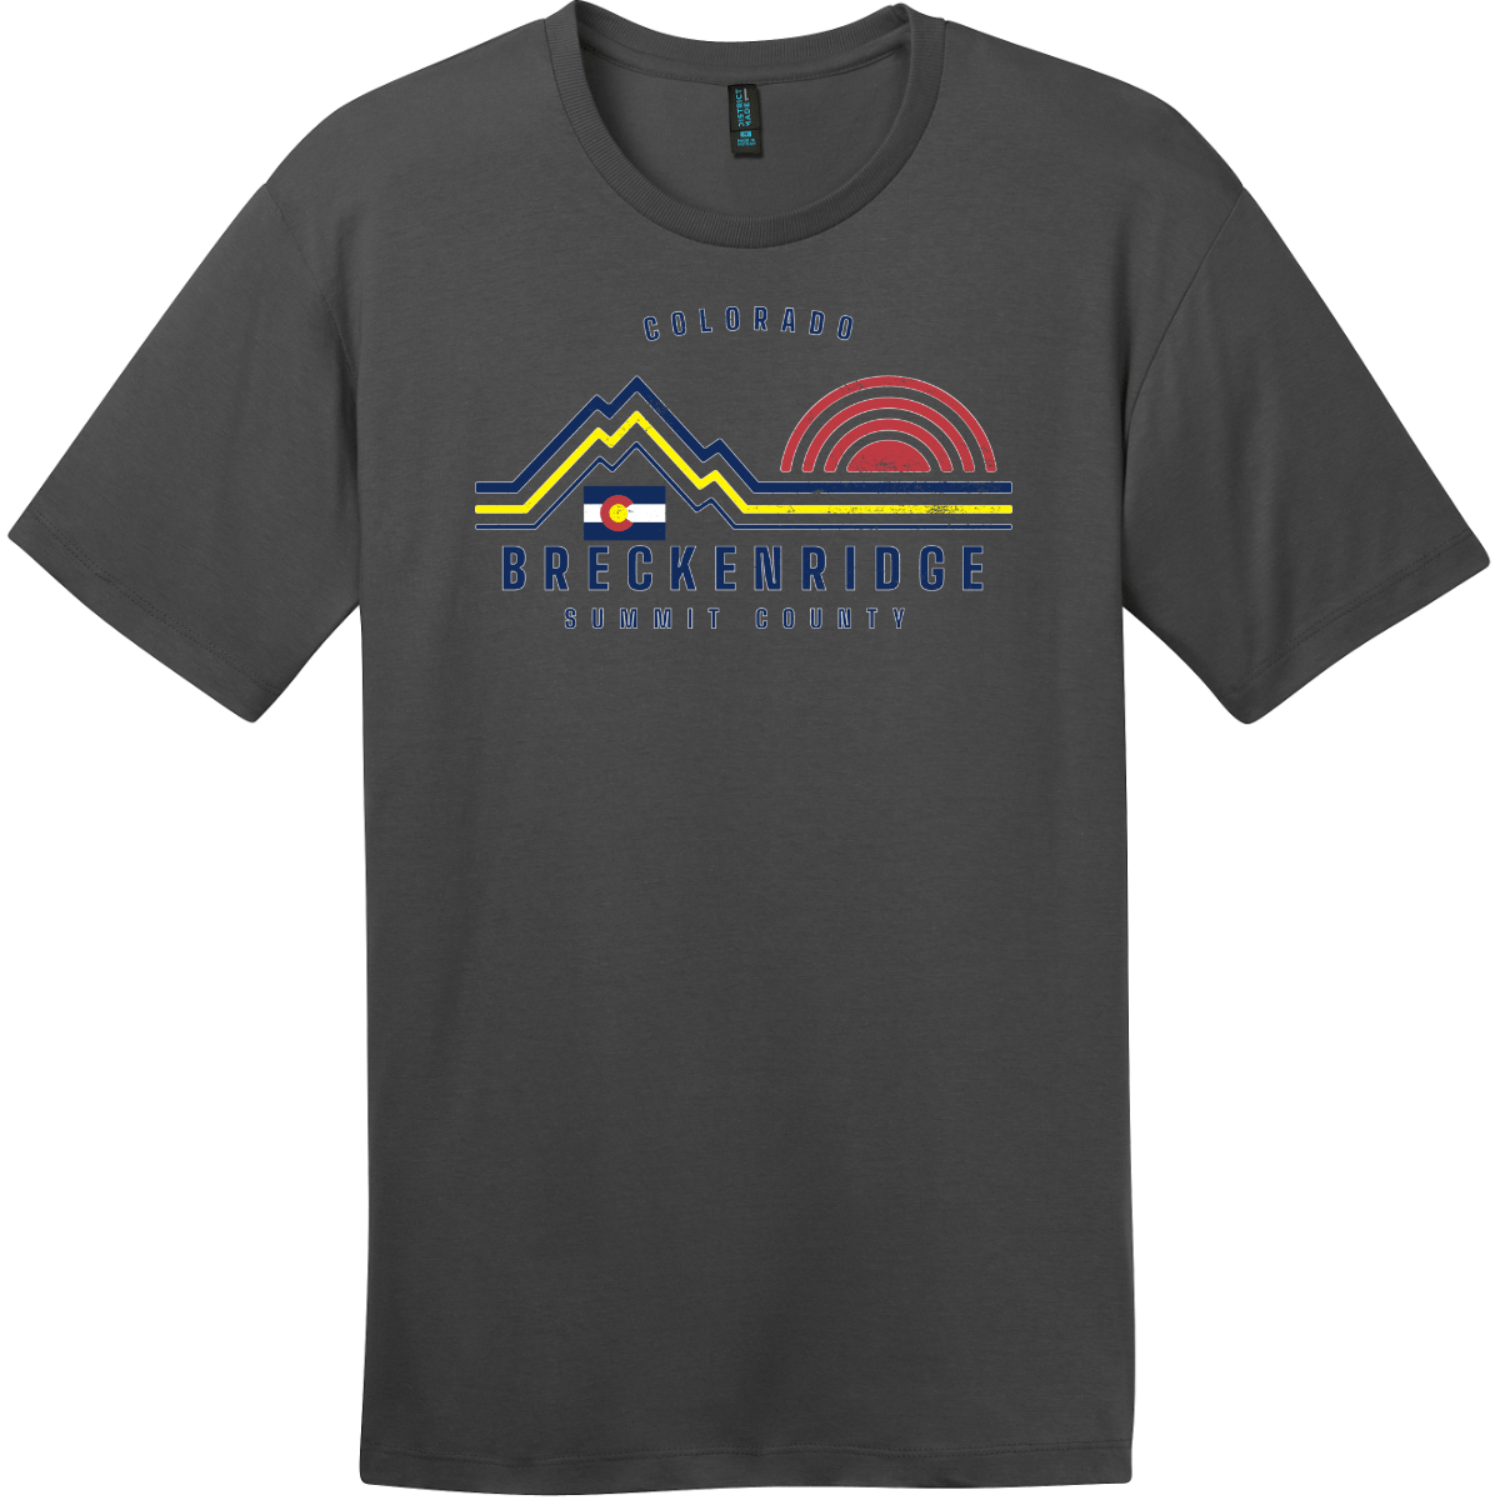 Breckenridge Mountain Summit County T-Shirt Charcoal District Perfect Weight Tee DT104